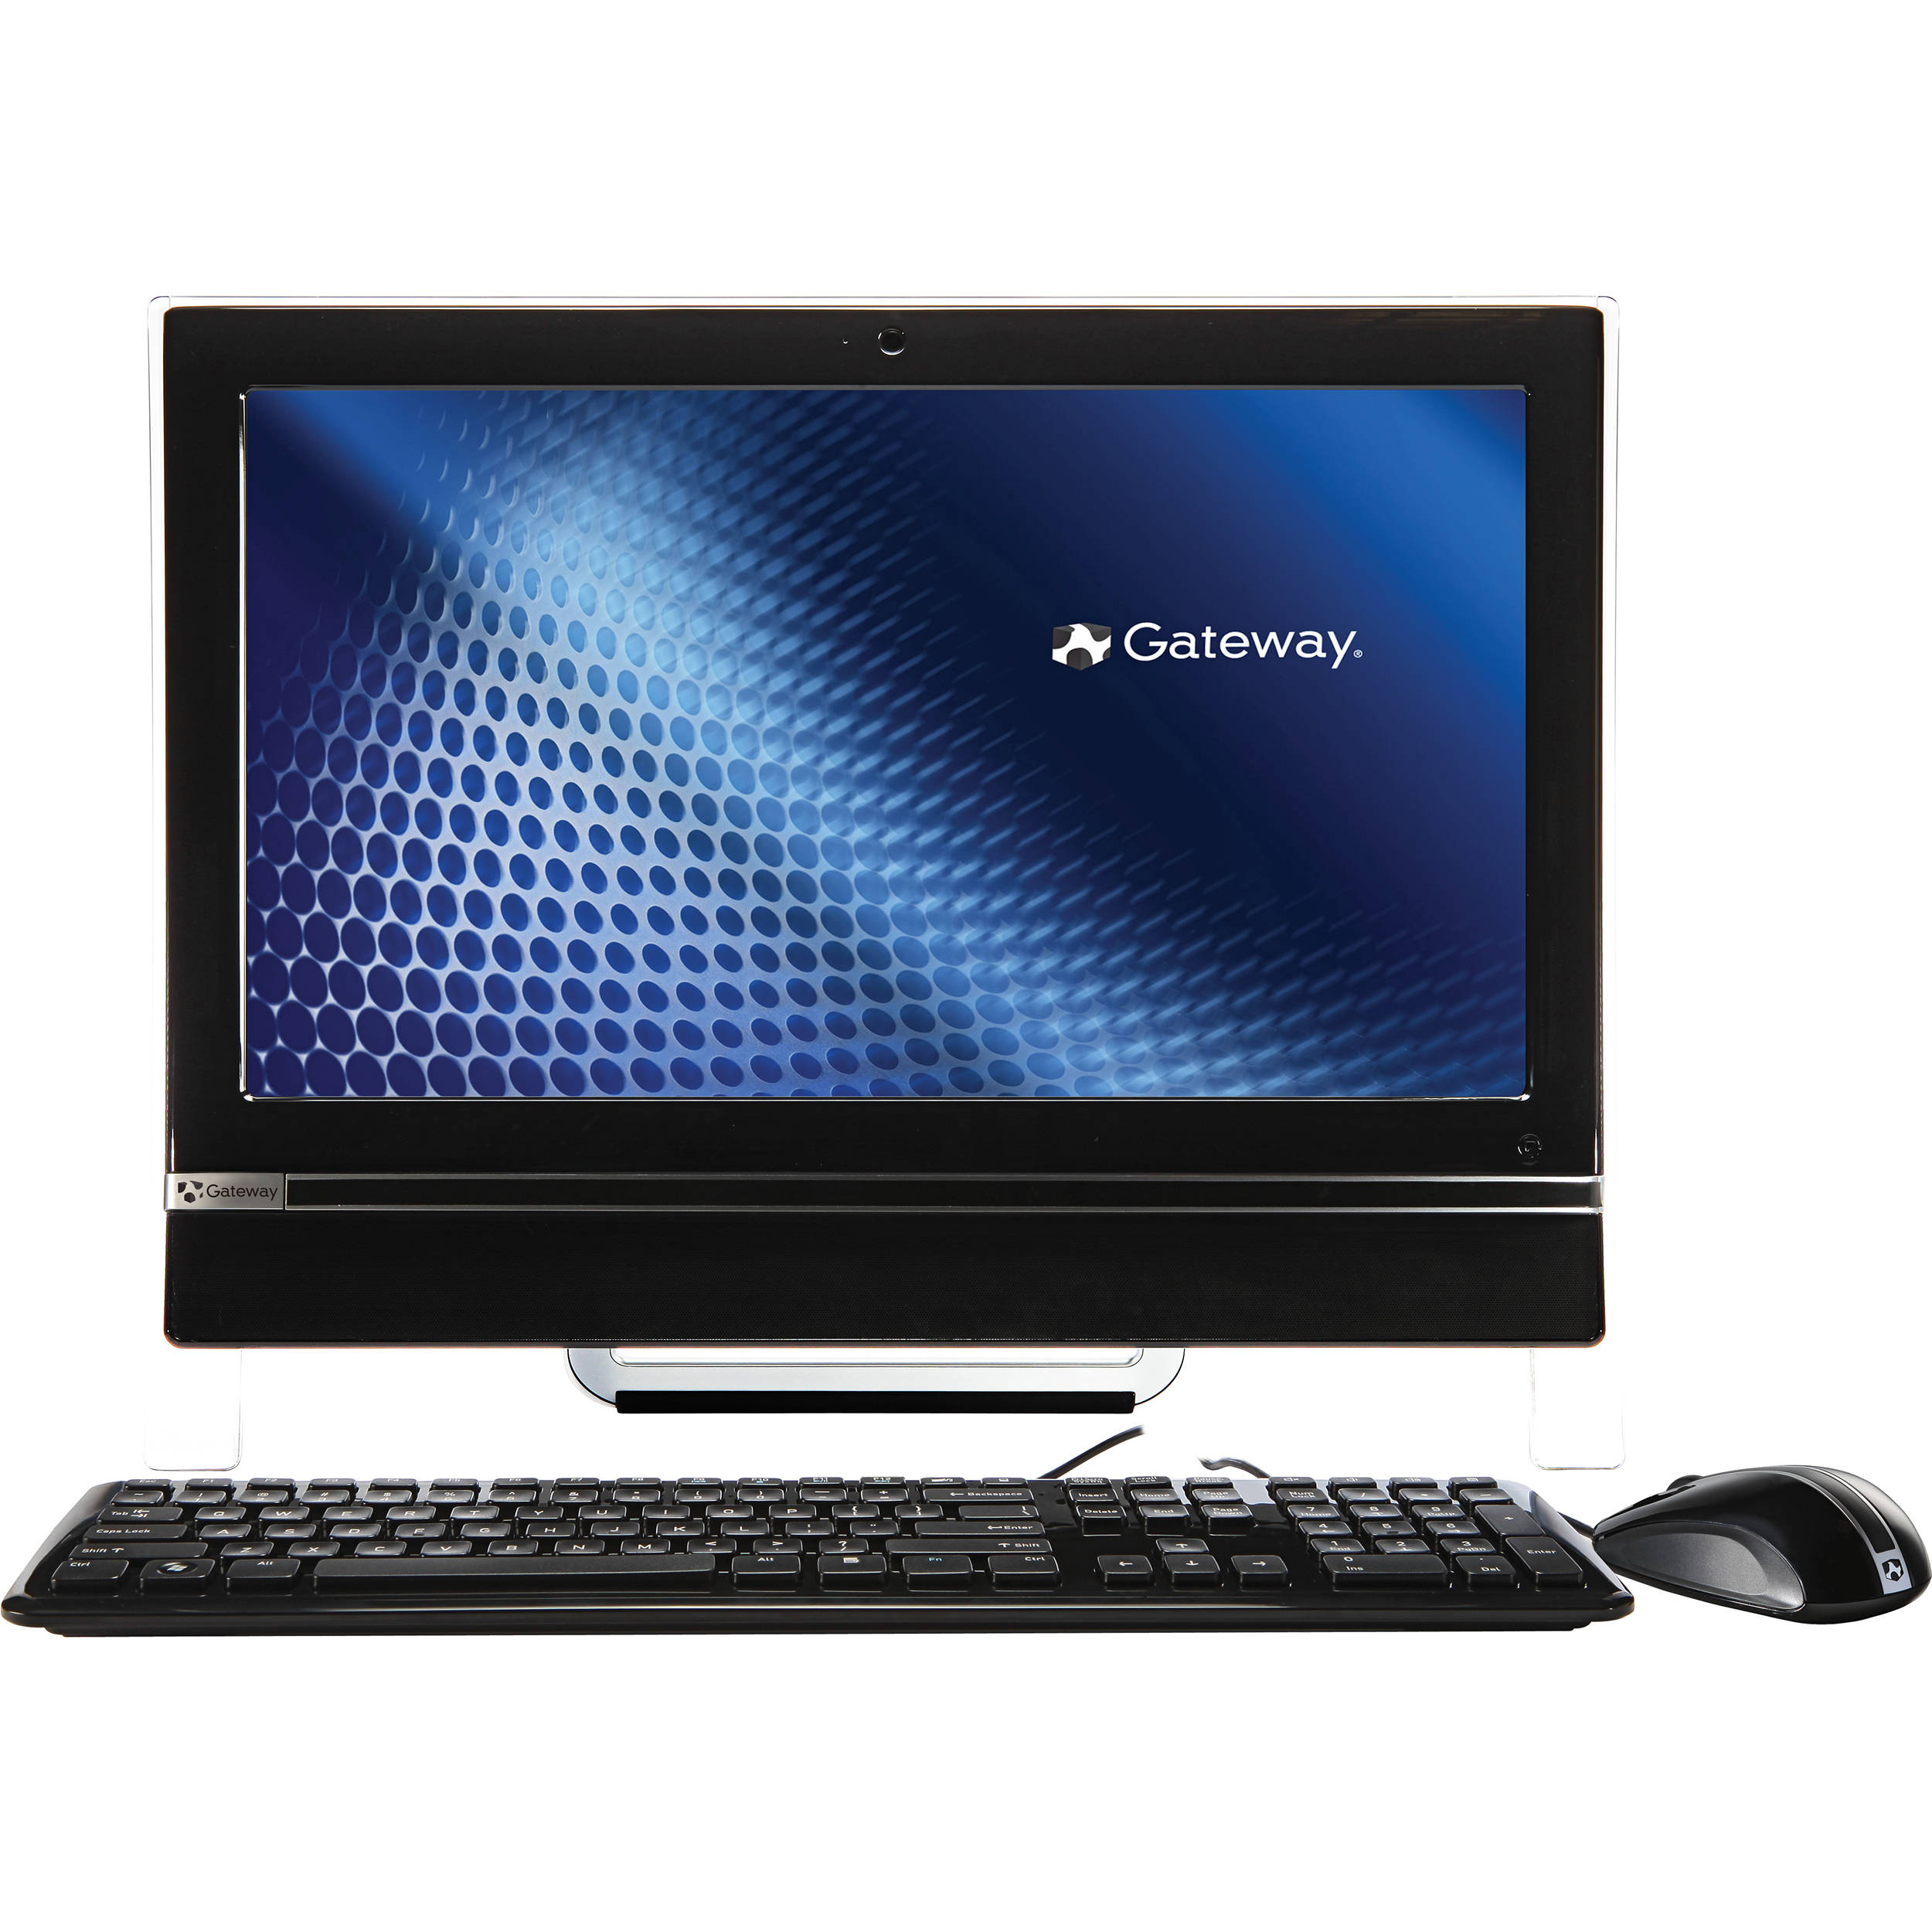 Comcast Cable Deals Denver: Gateway One ZX4800-07 All-in-One Desktop Computer PW.G8502.022